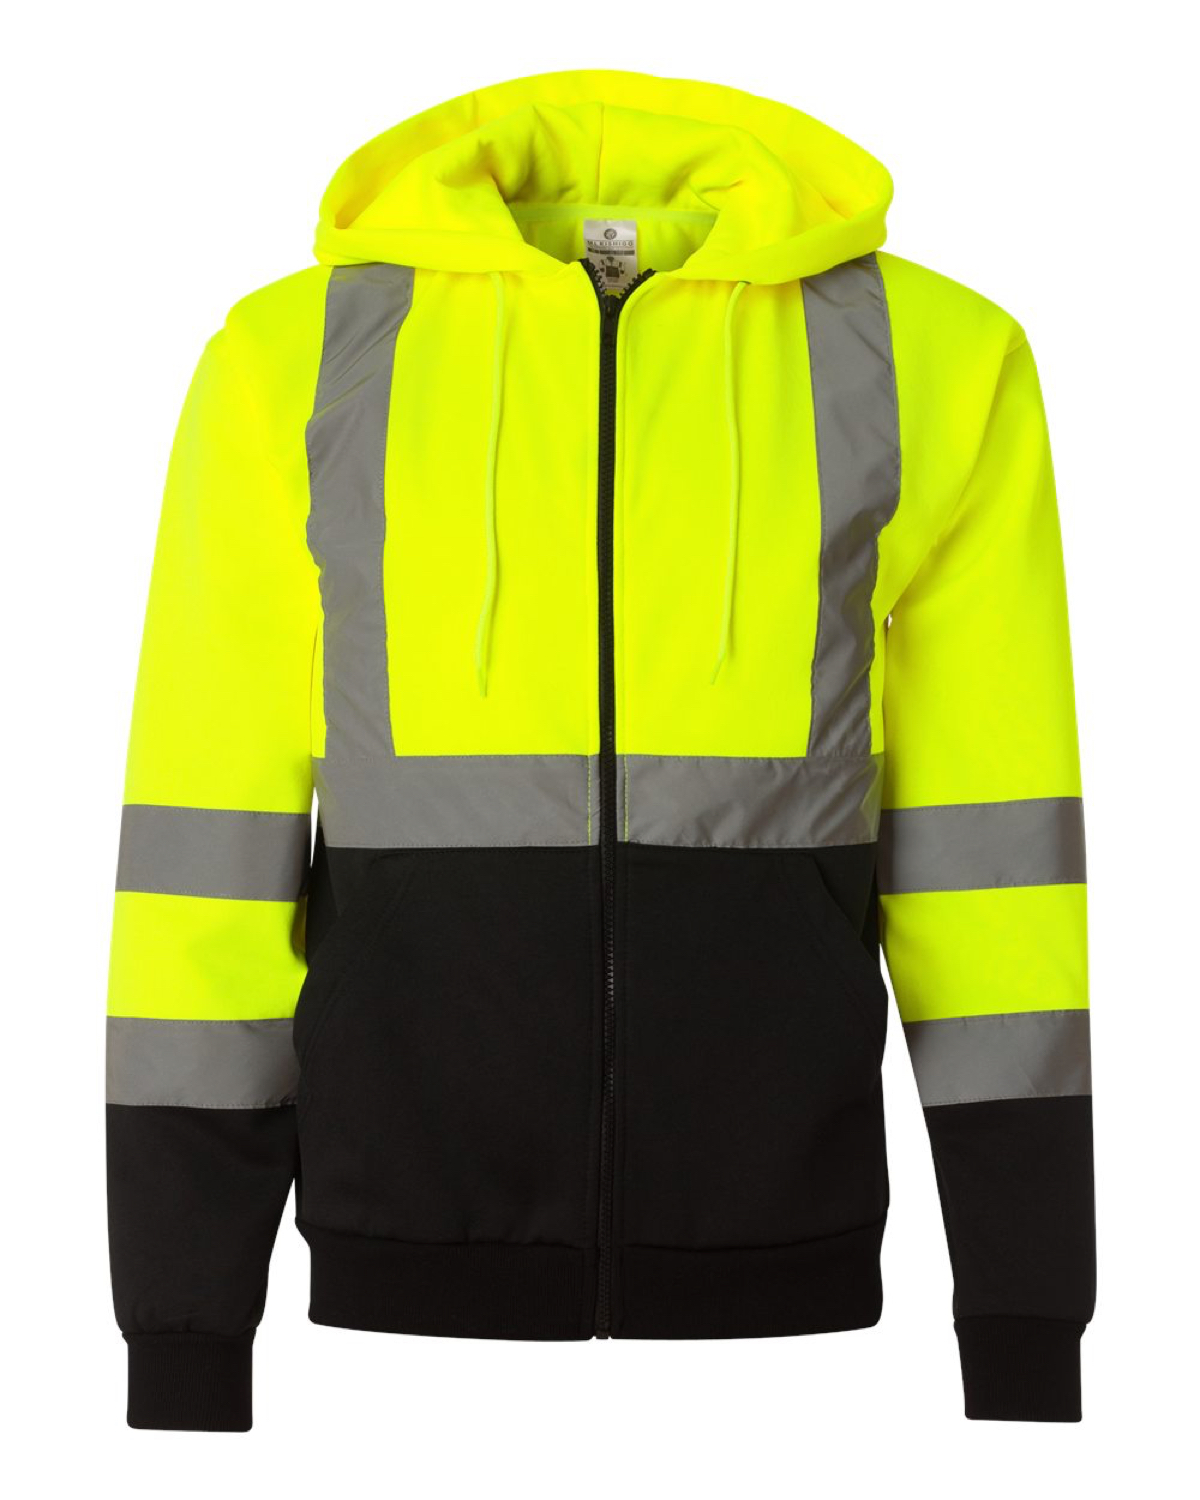 JS102-103 ML Kishigo - Hi-Vis Hooded Full-Zip Sweatshirt